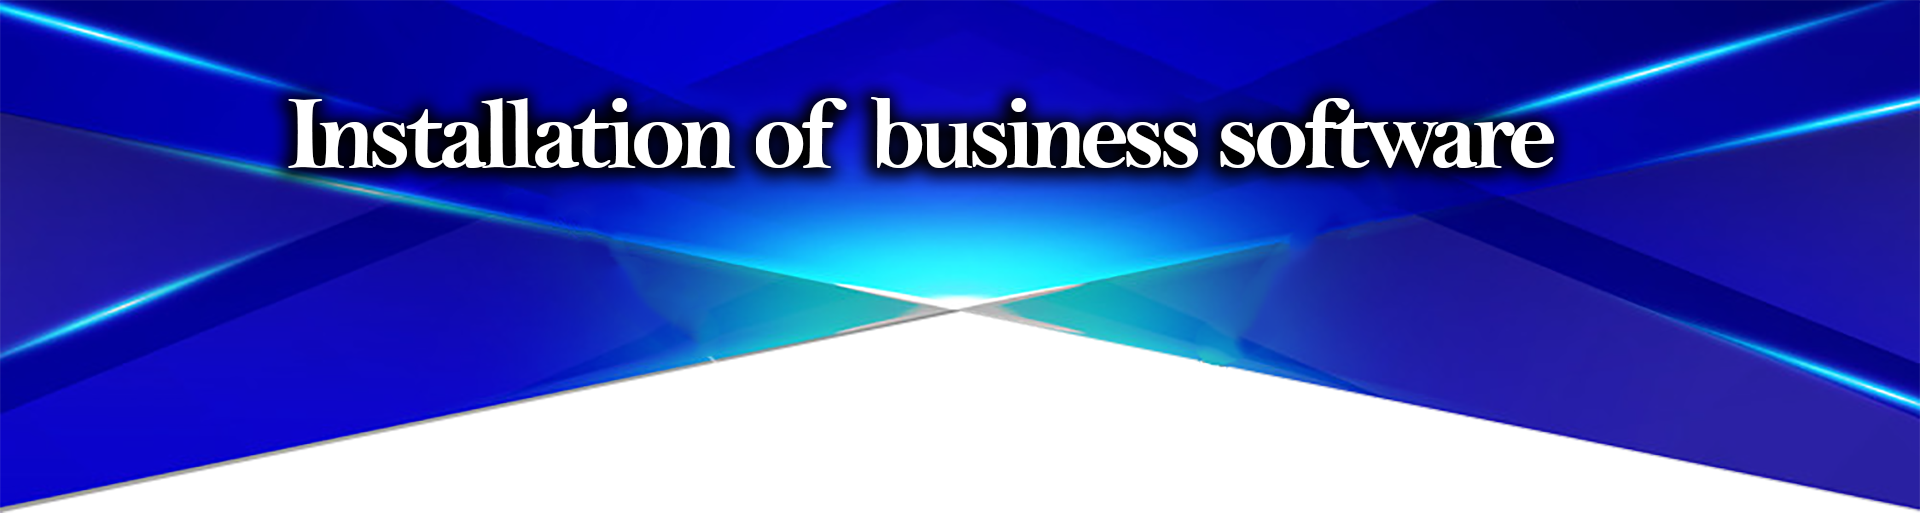 Installation of business software